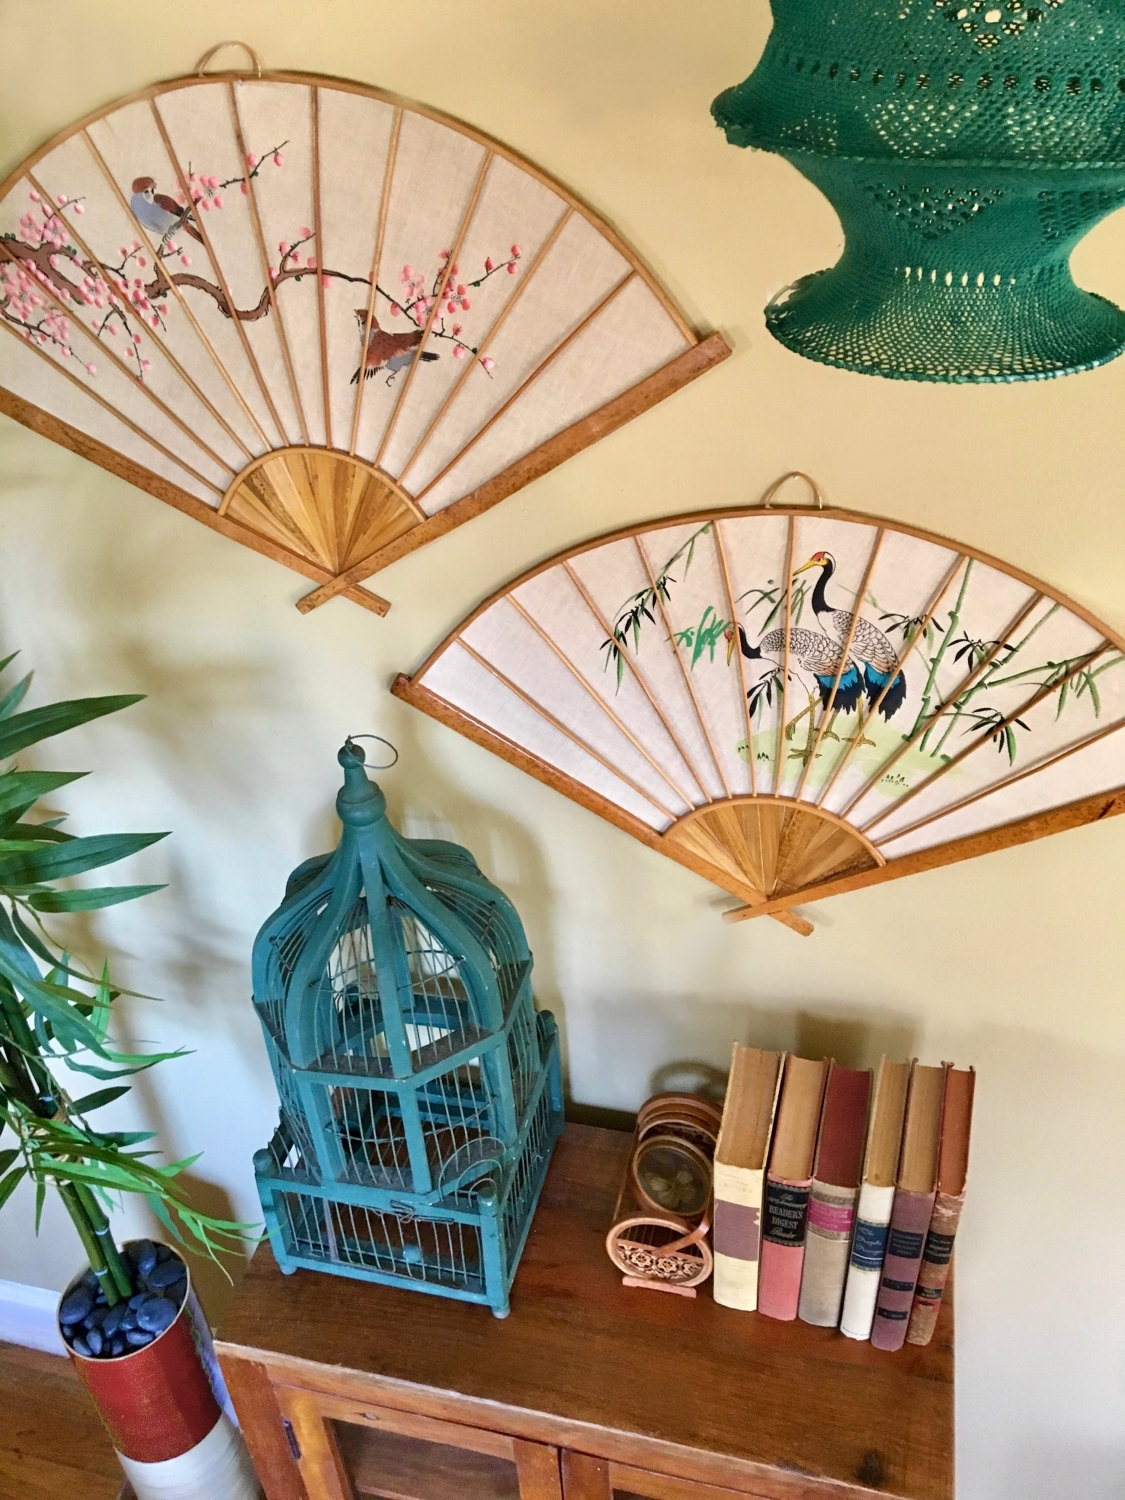 Vintage Asian Handpainted Fans Wall Hanging Set / Wall Decor With Inside Most Current Asian Fabric Wall Art (View 11 of 15)